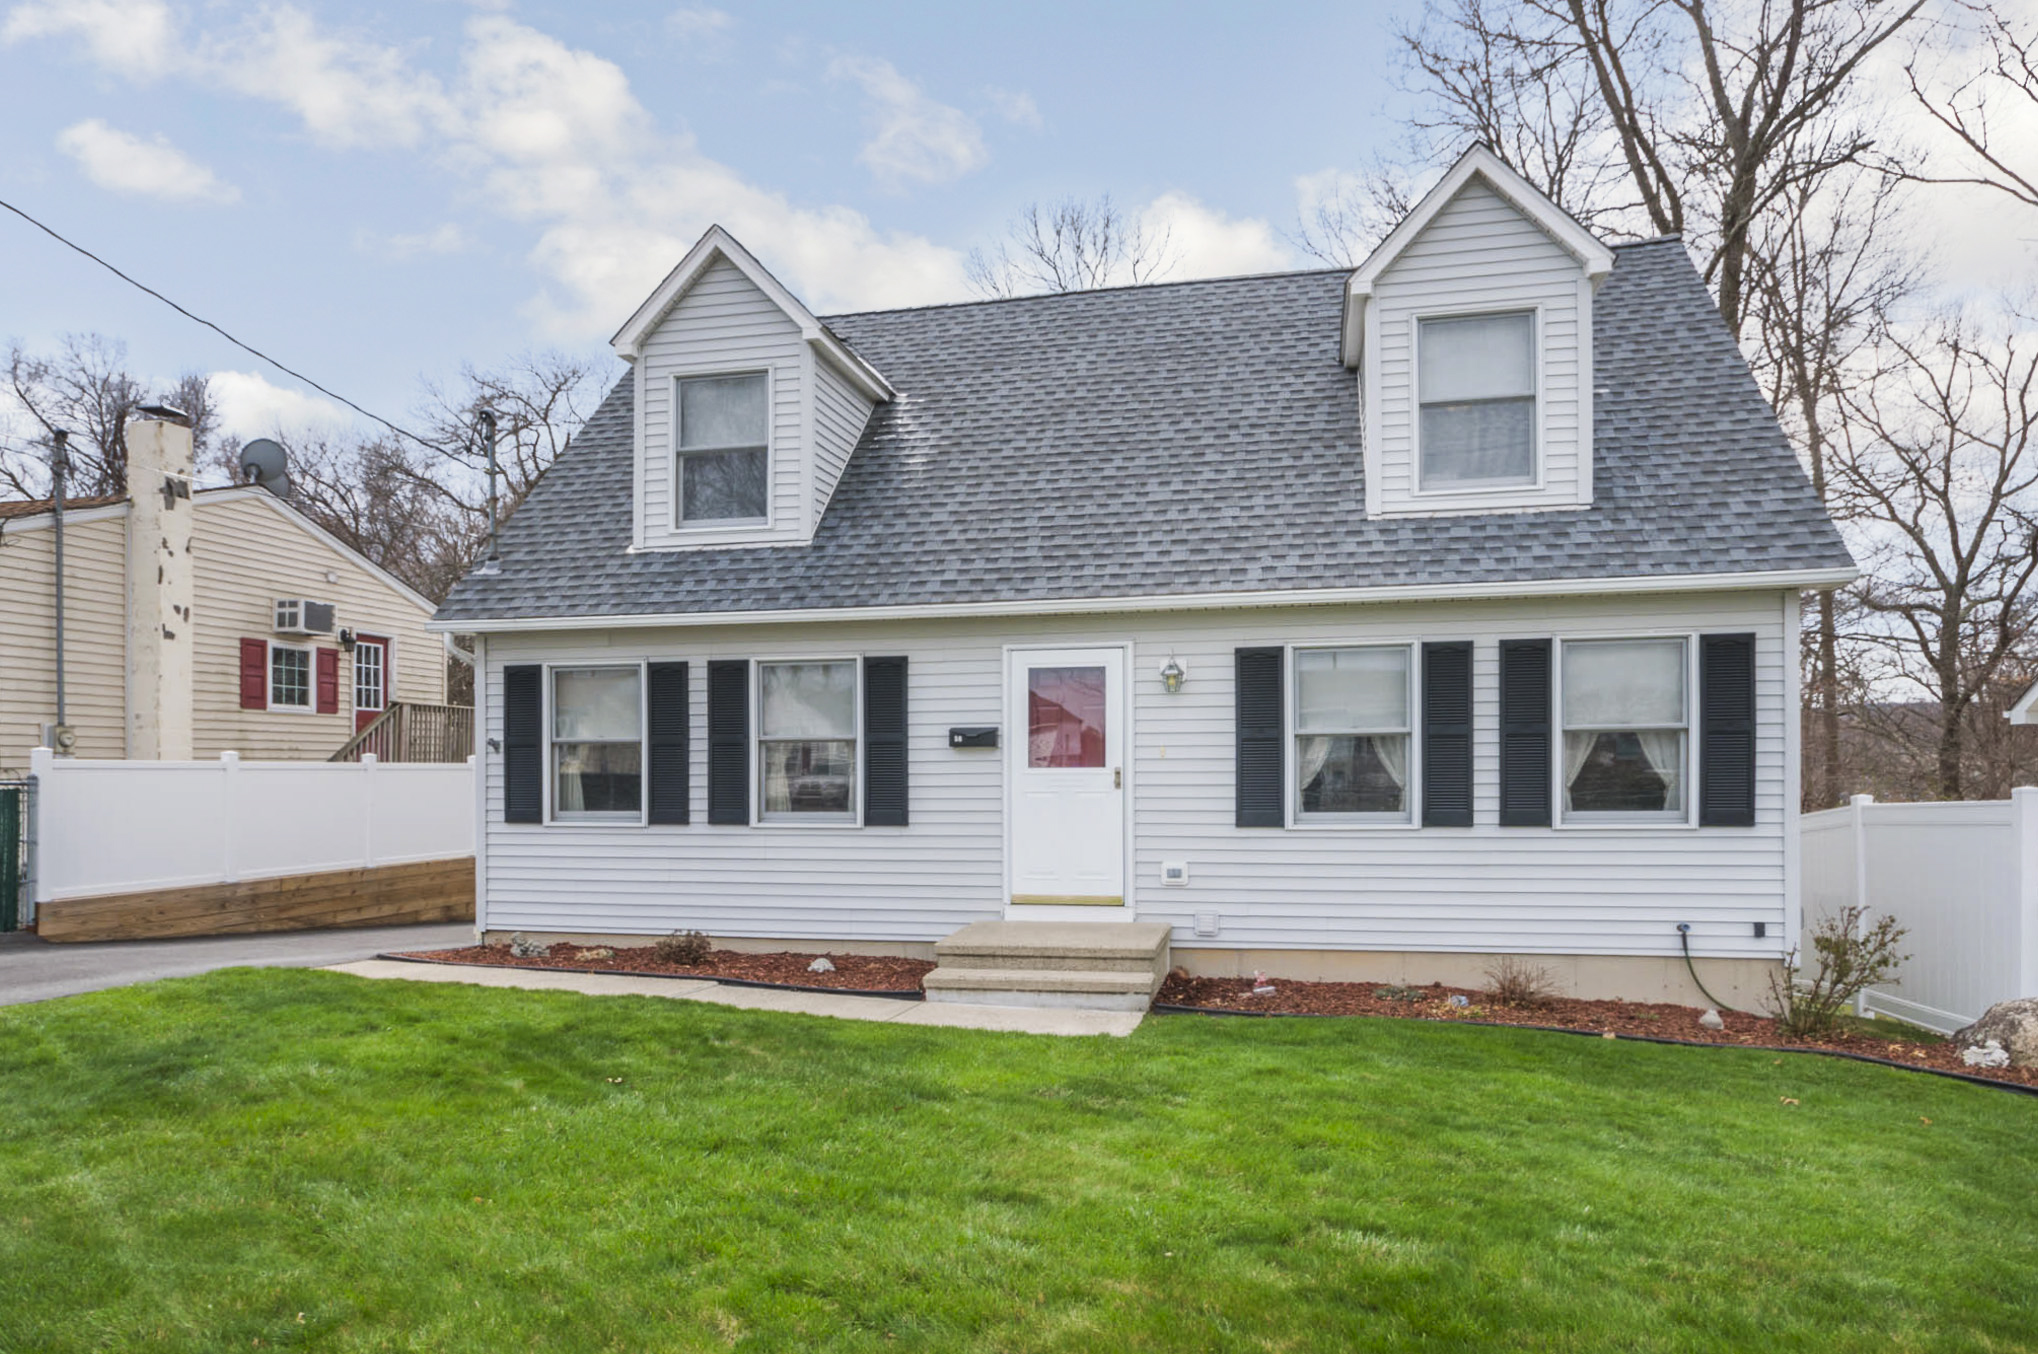 Single Family Home for Sale at Stunning Cape Cod 56 Forest Avenue Danbury, Connecticut, 06810 United States